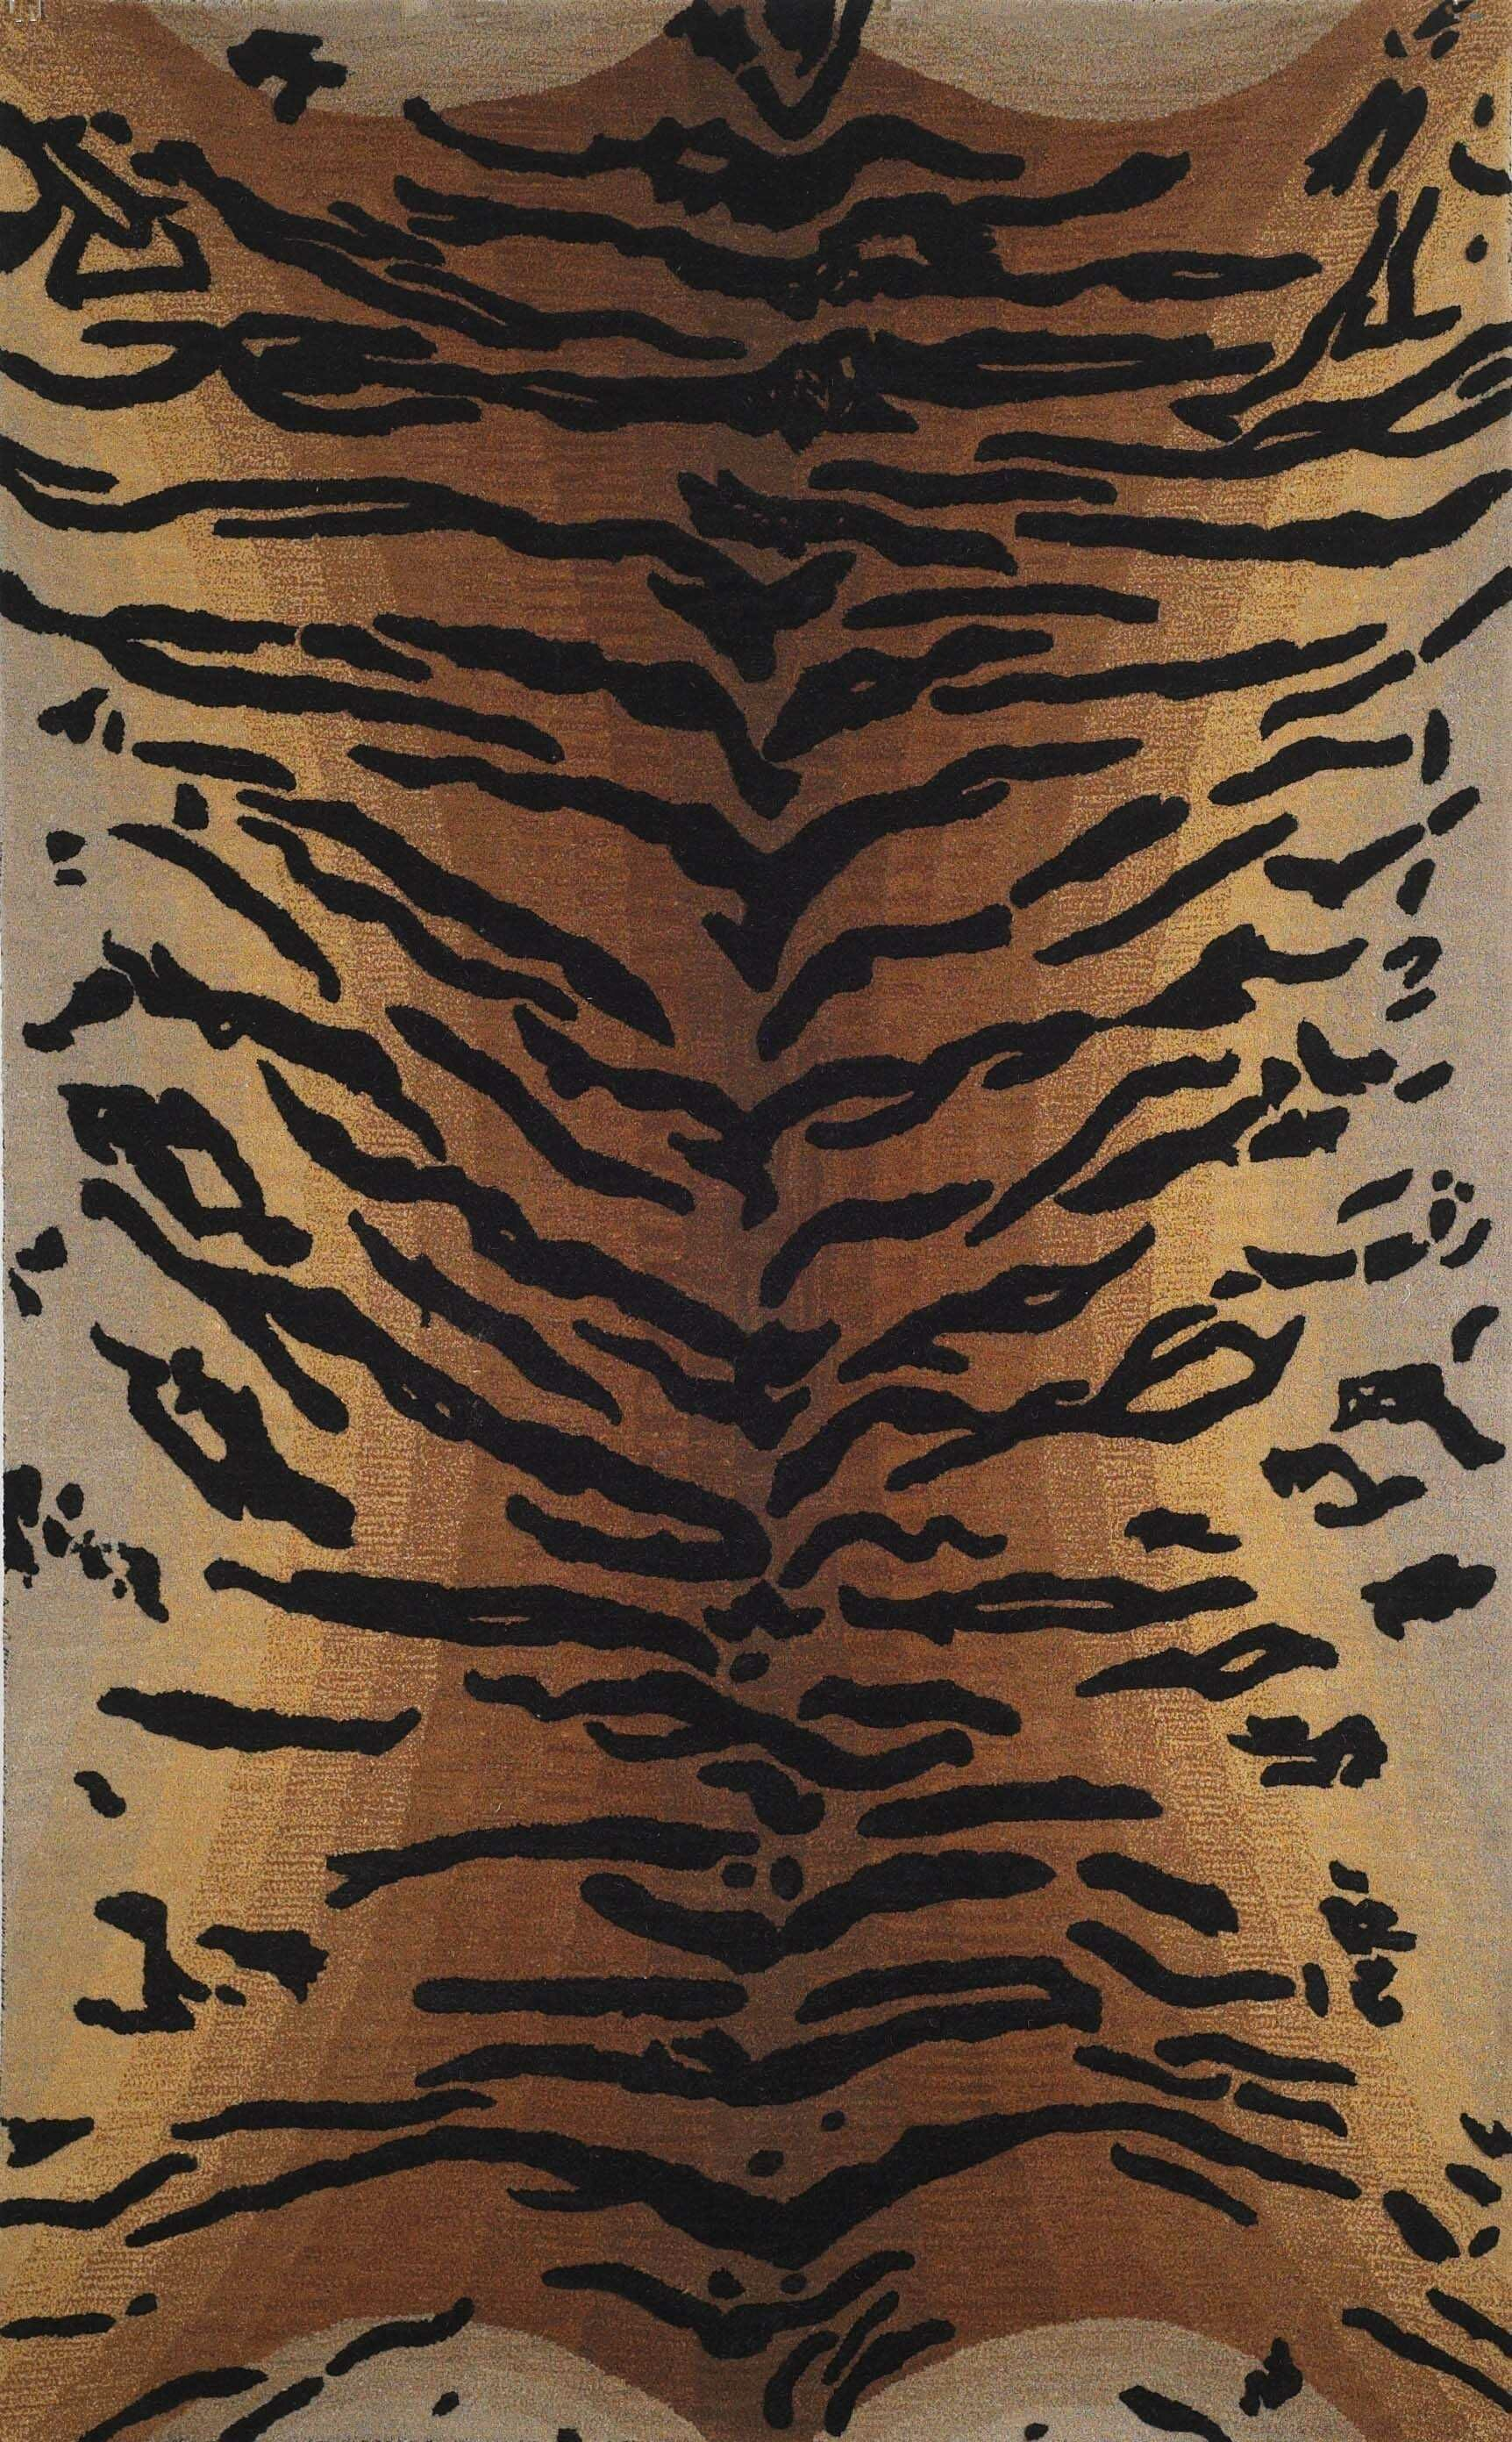 Bowdens Tiger Rug Rug Size: Rectangle 5' x 8'